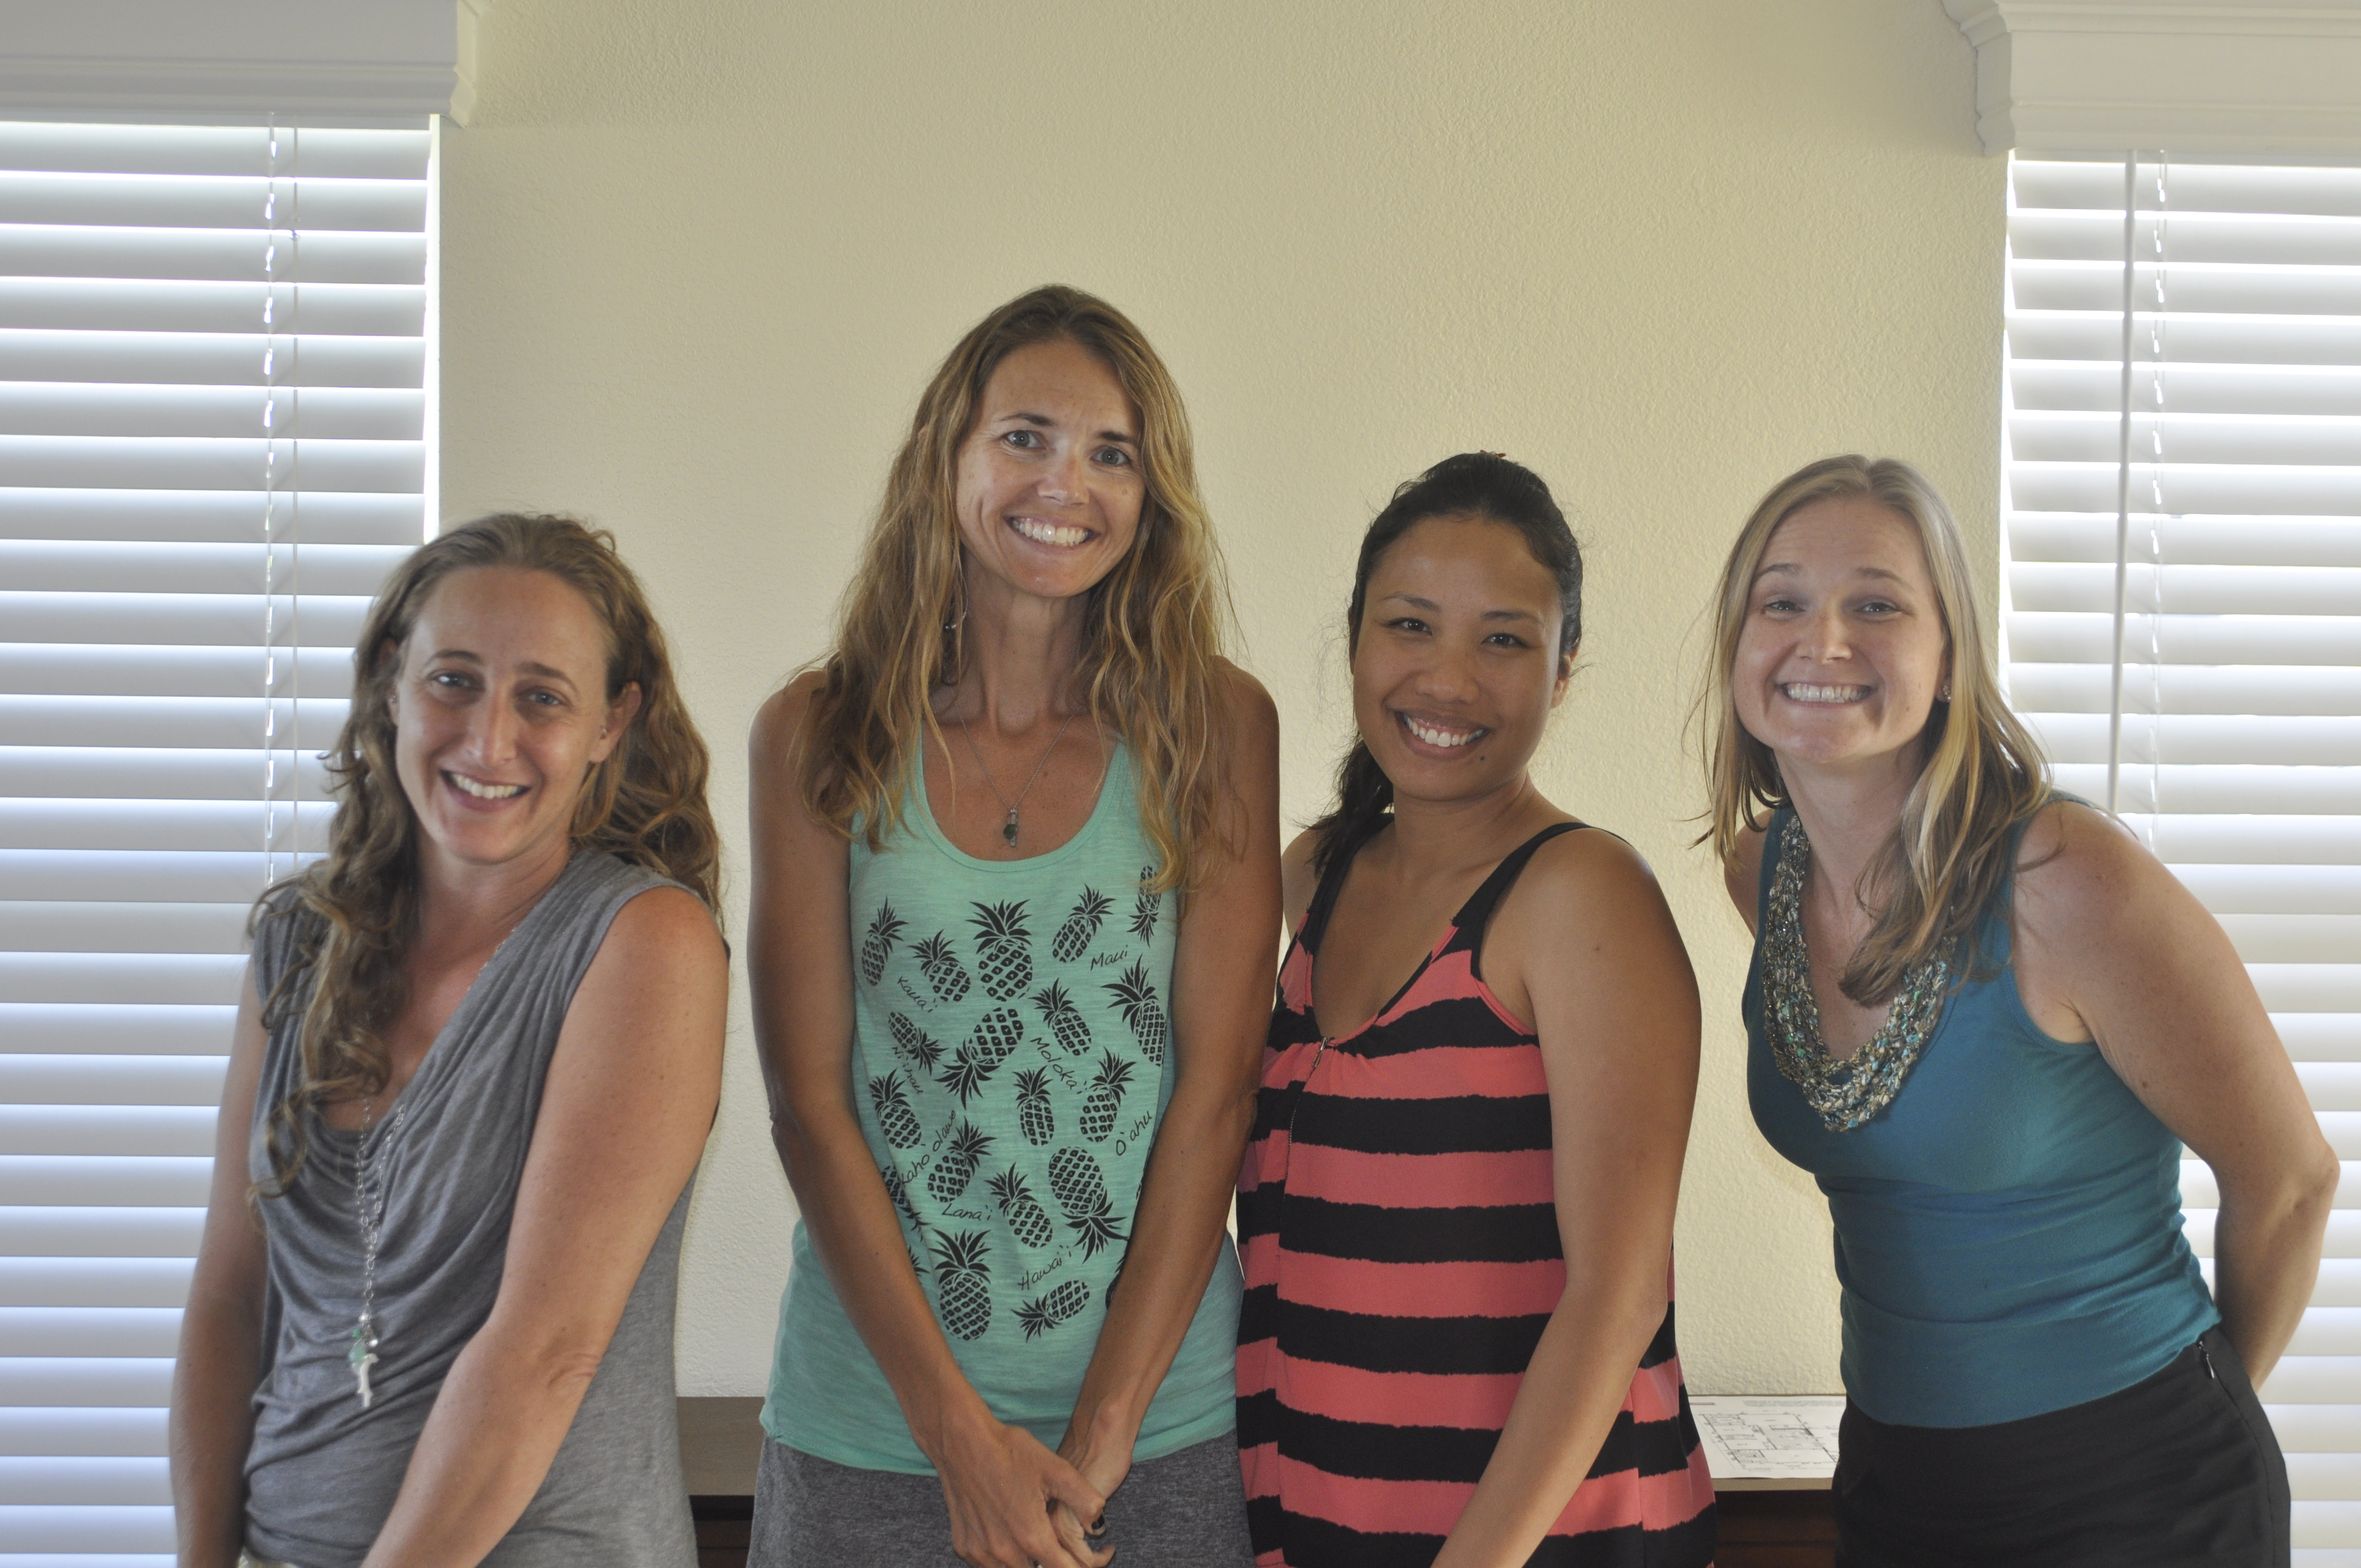 Winter 2015 session participants: (left to right) Arica Sobel of Maui Business Photography, Bridgett Parker of Yelp Maui & Jamberry Nails, Jennilin Cachola of Cupcake Ladies Catering Co. and Danielle Miller of Miller Media Management.